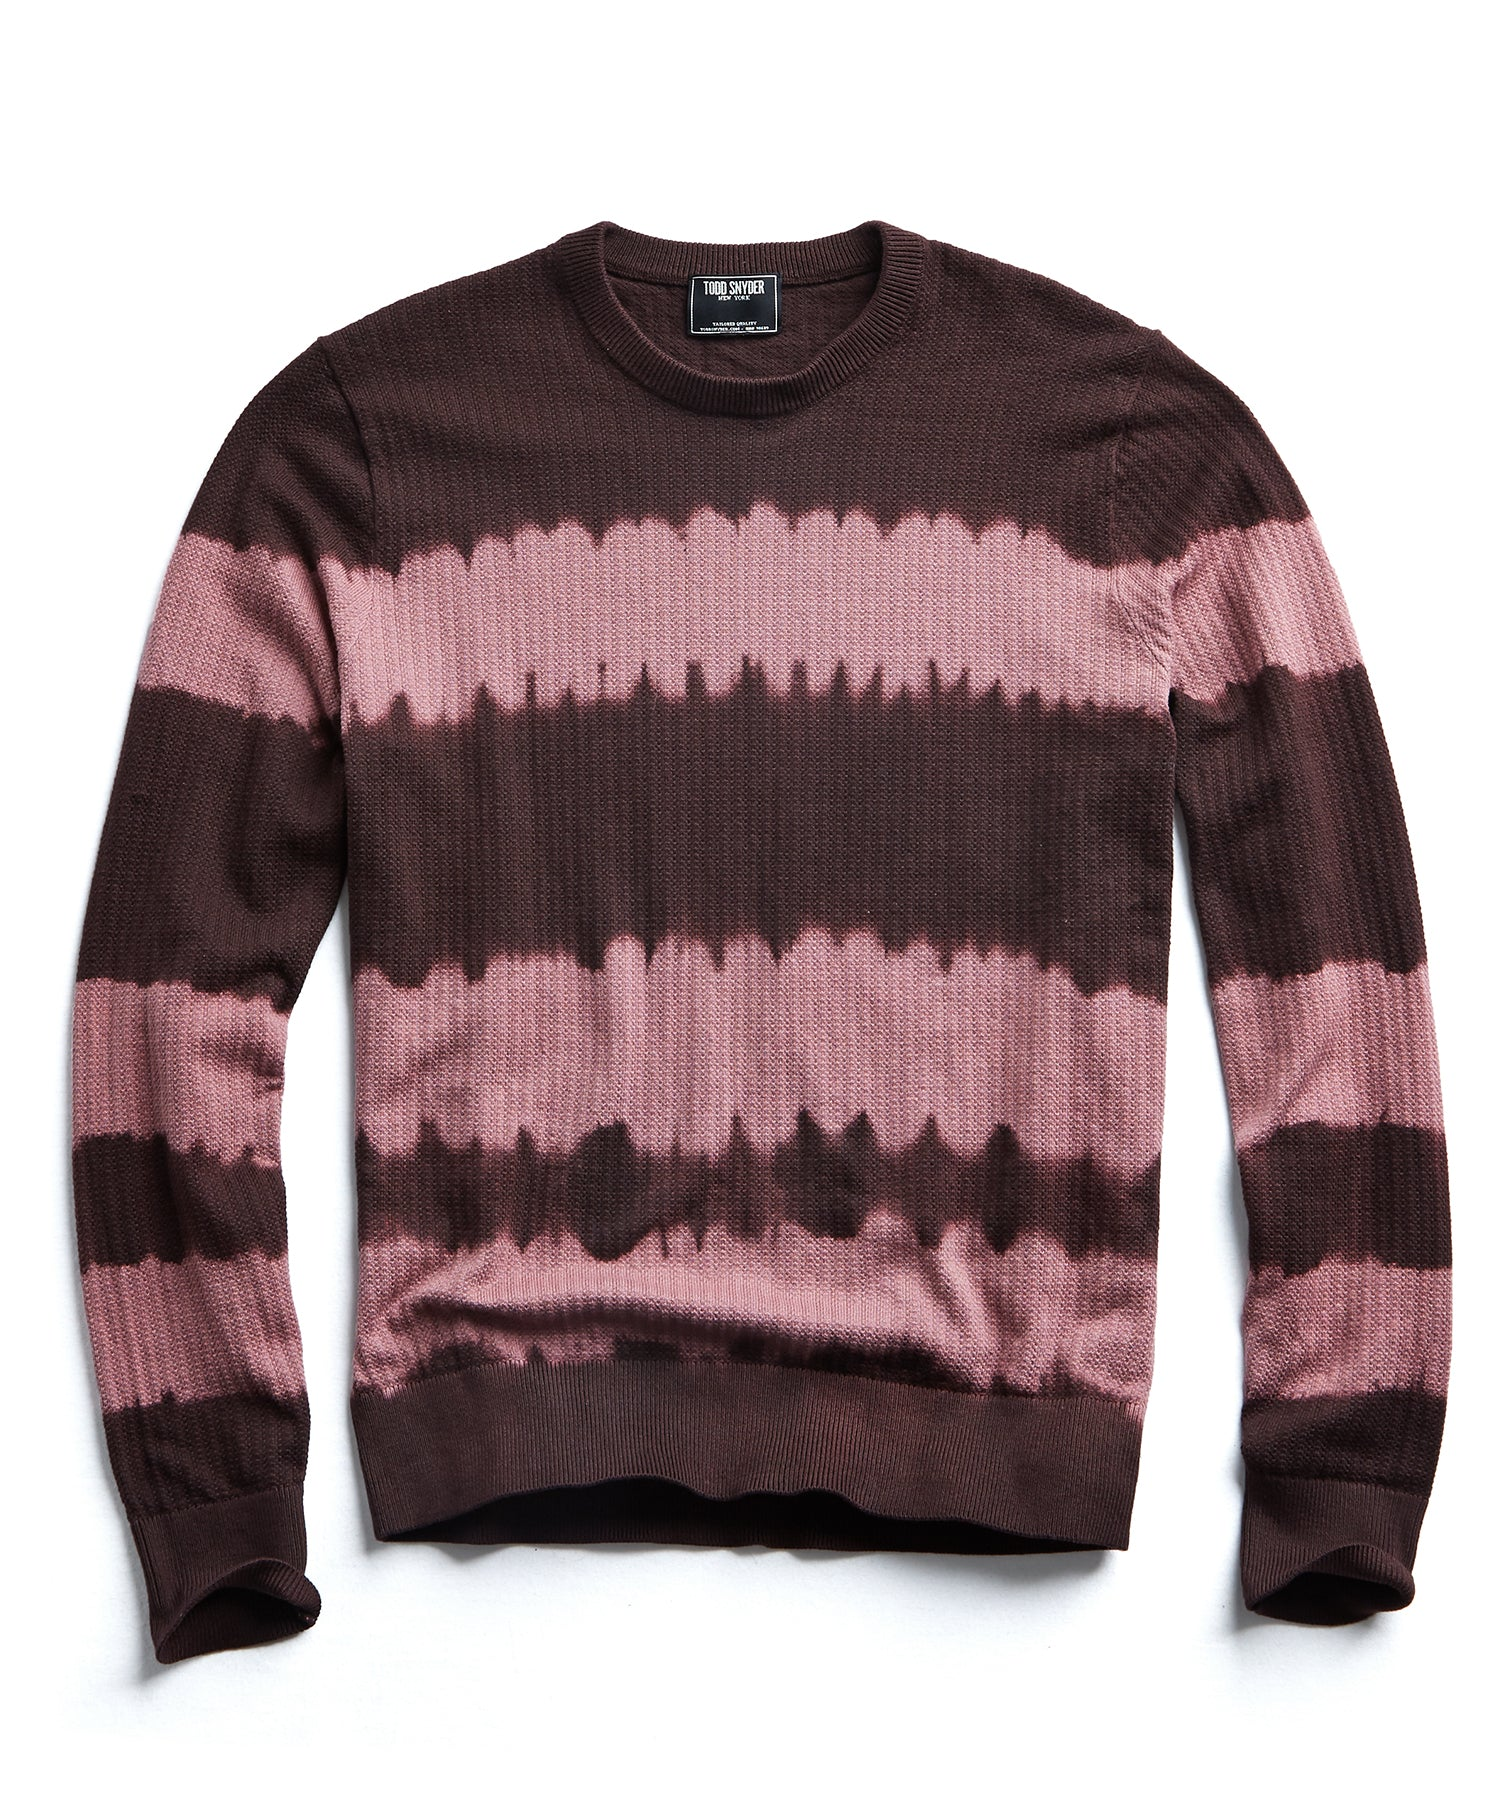 Cotton Tie Dye Crewneck in Burgundy